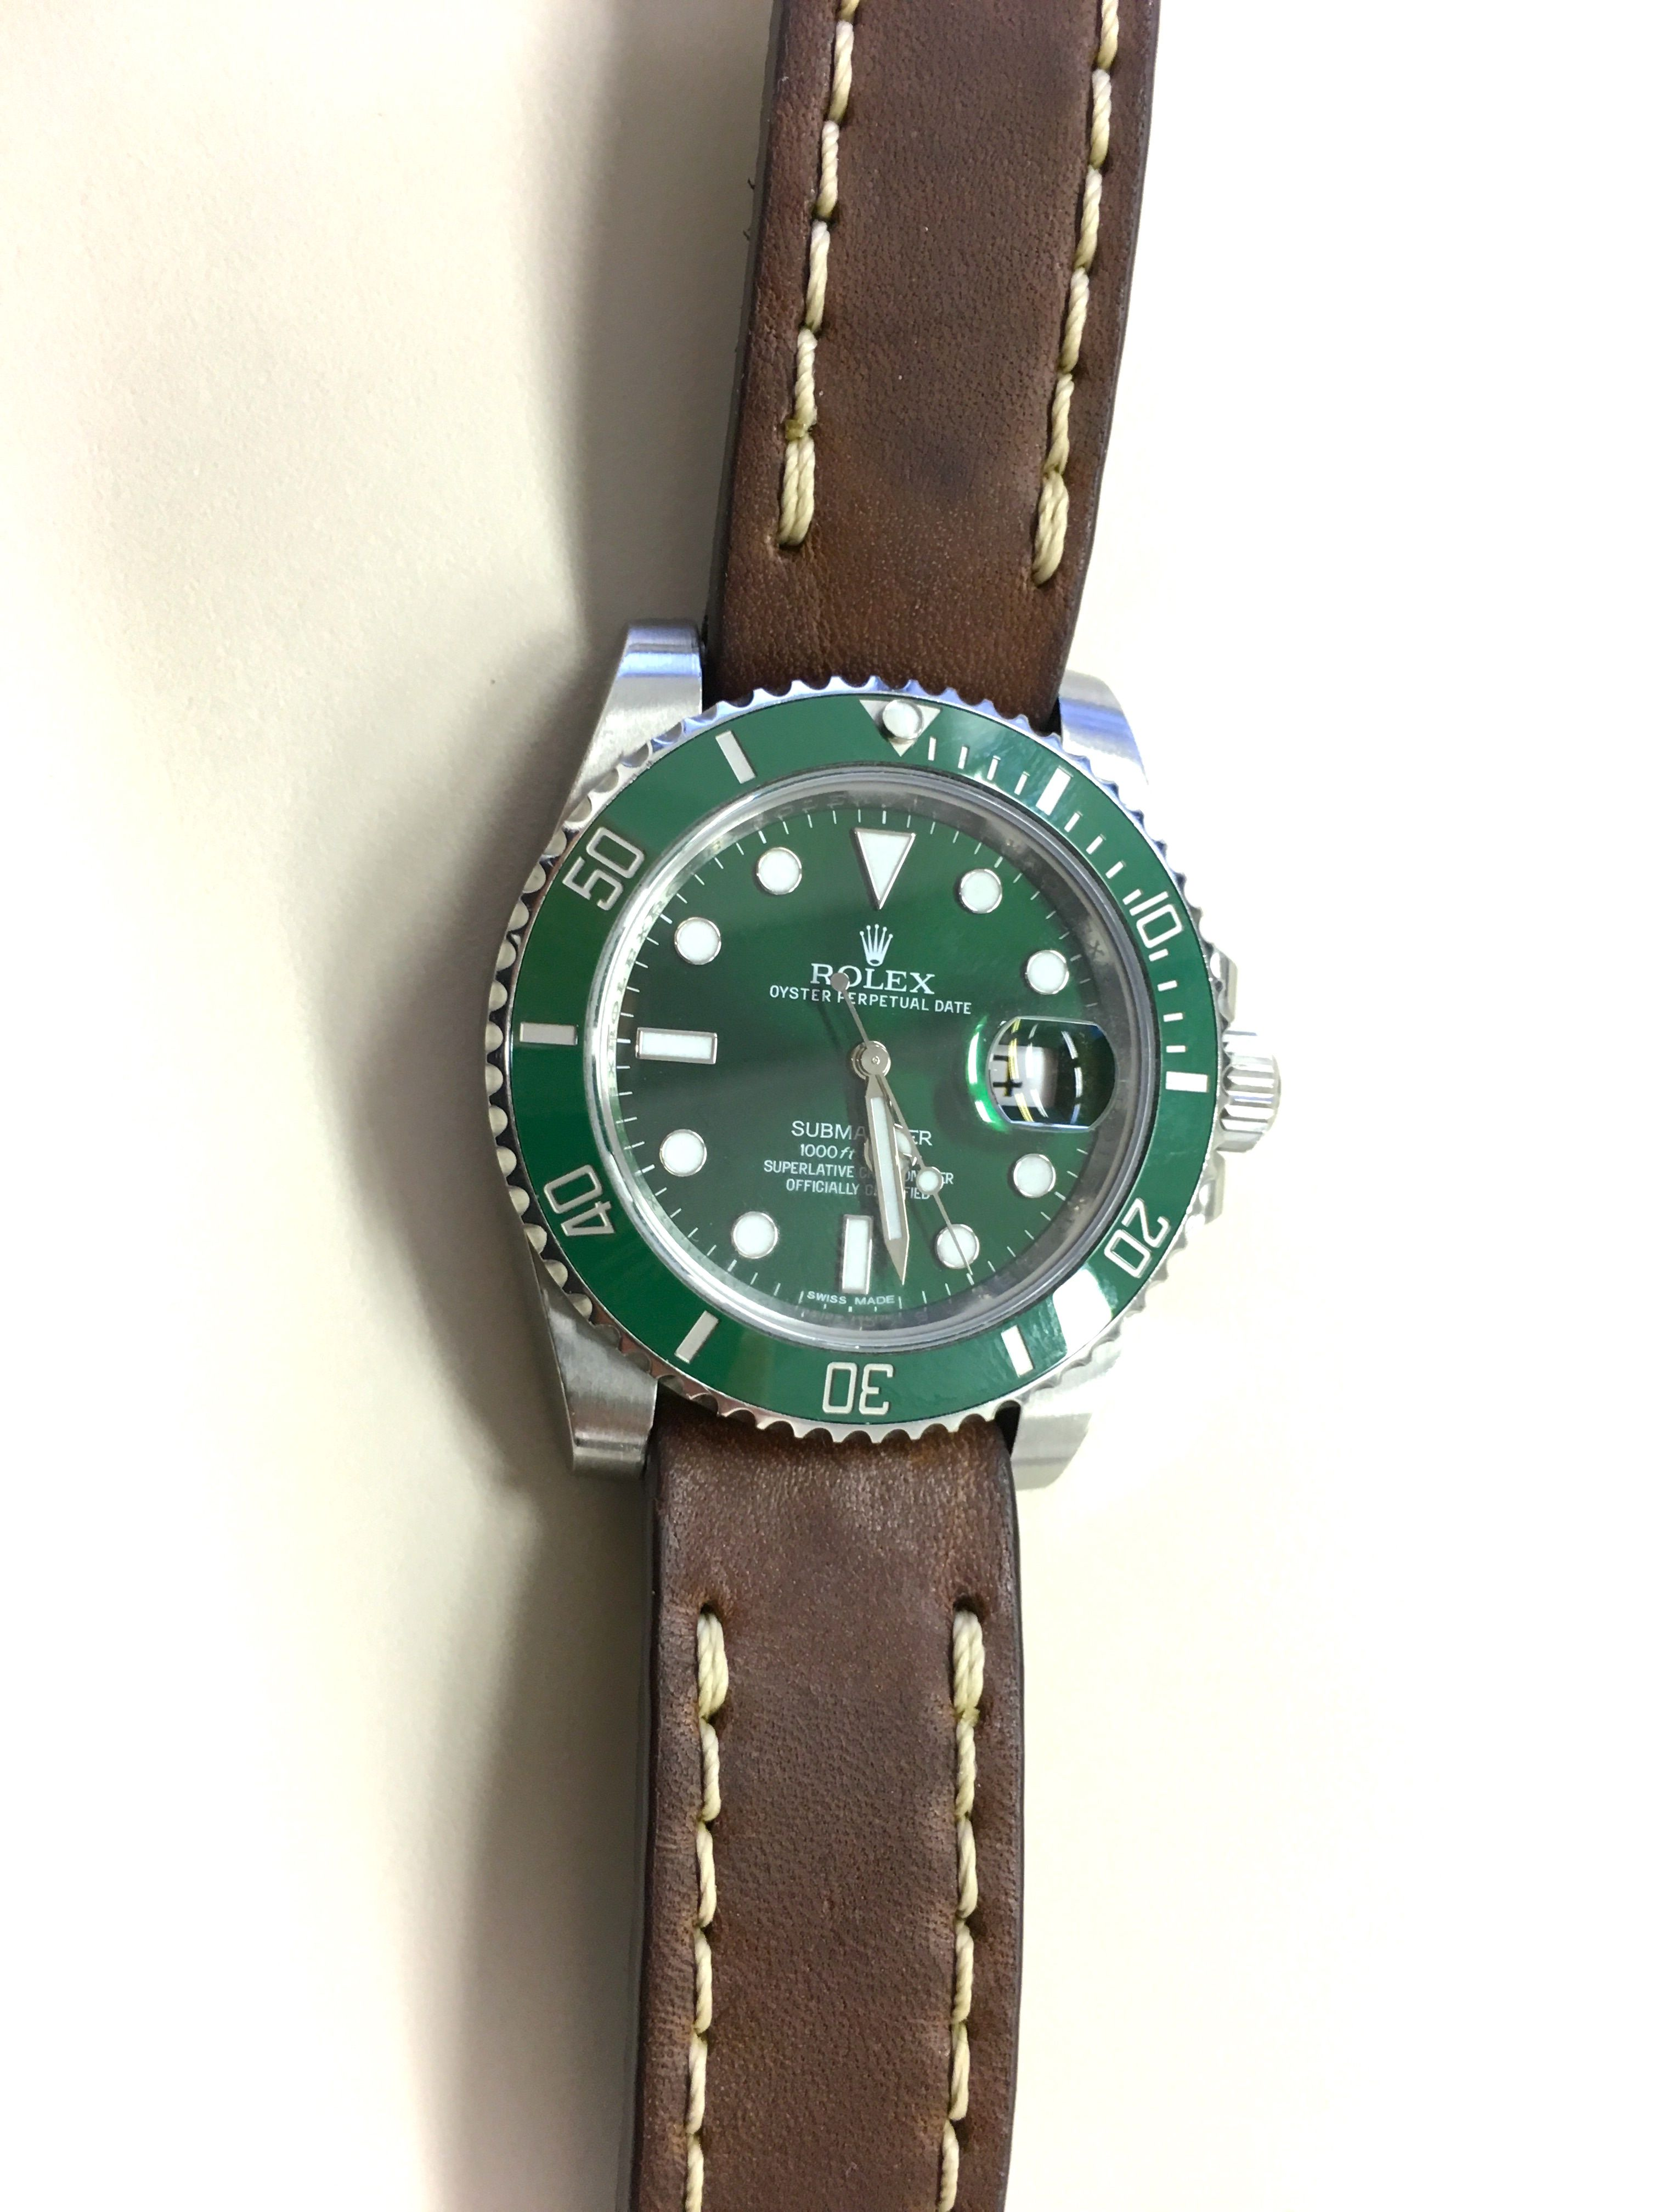 Green Rolex Submariner with Leather Strap